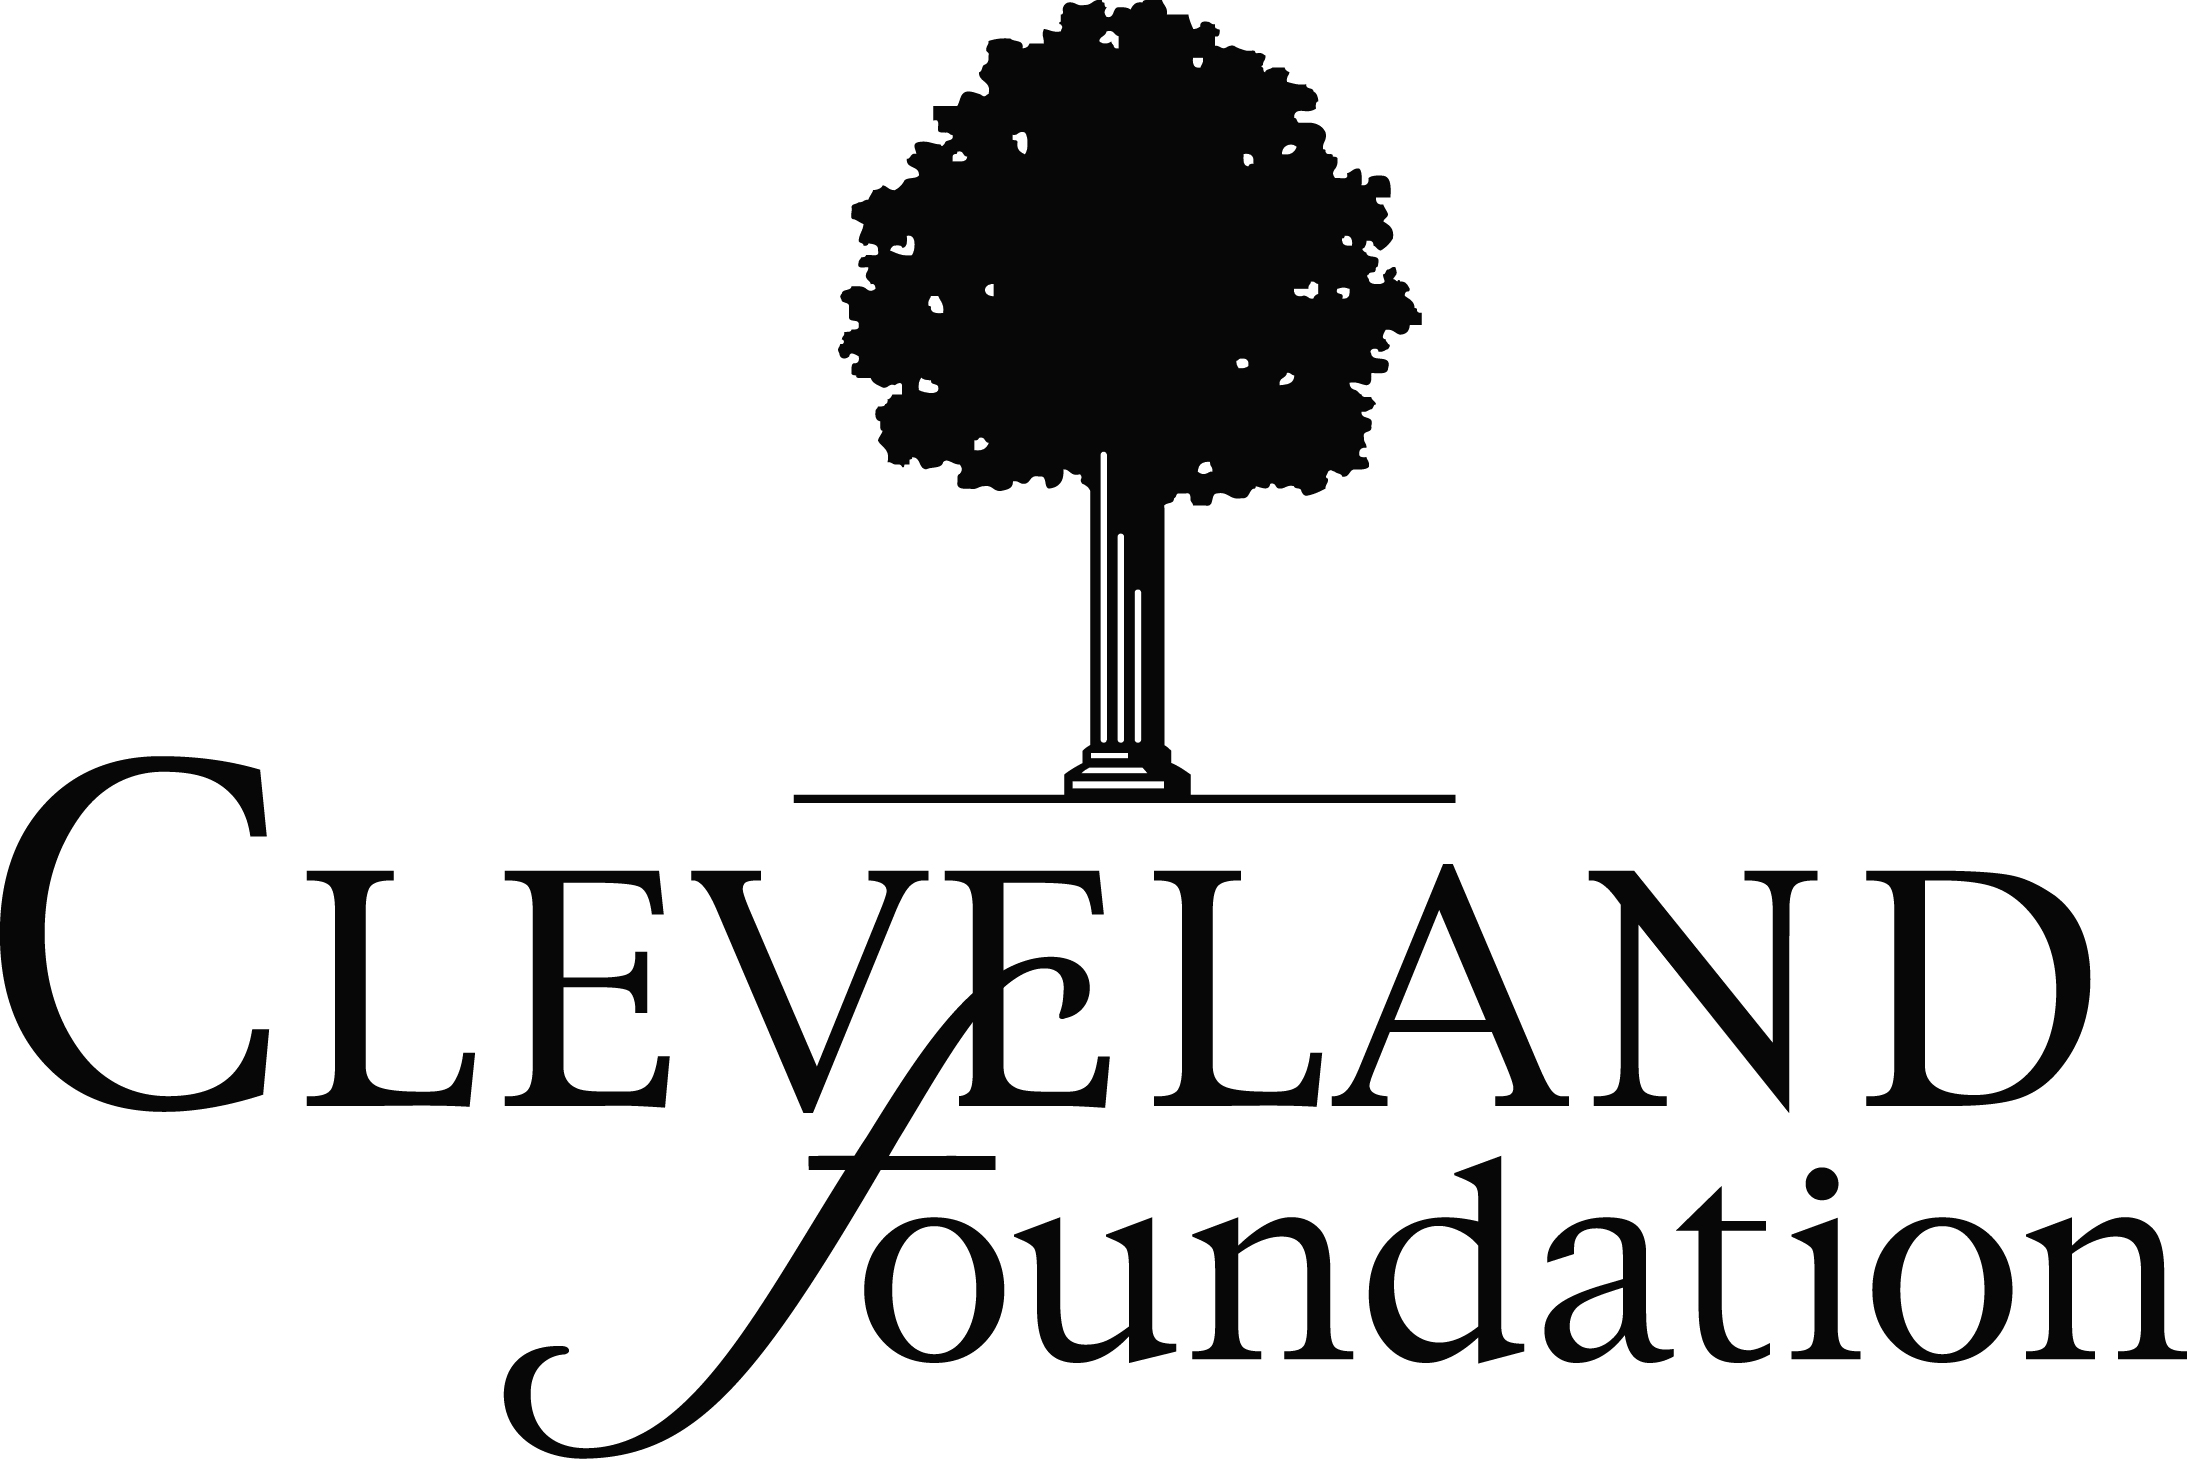 Cleveland foundation logo black